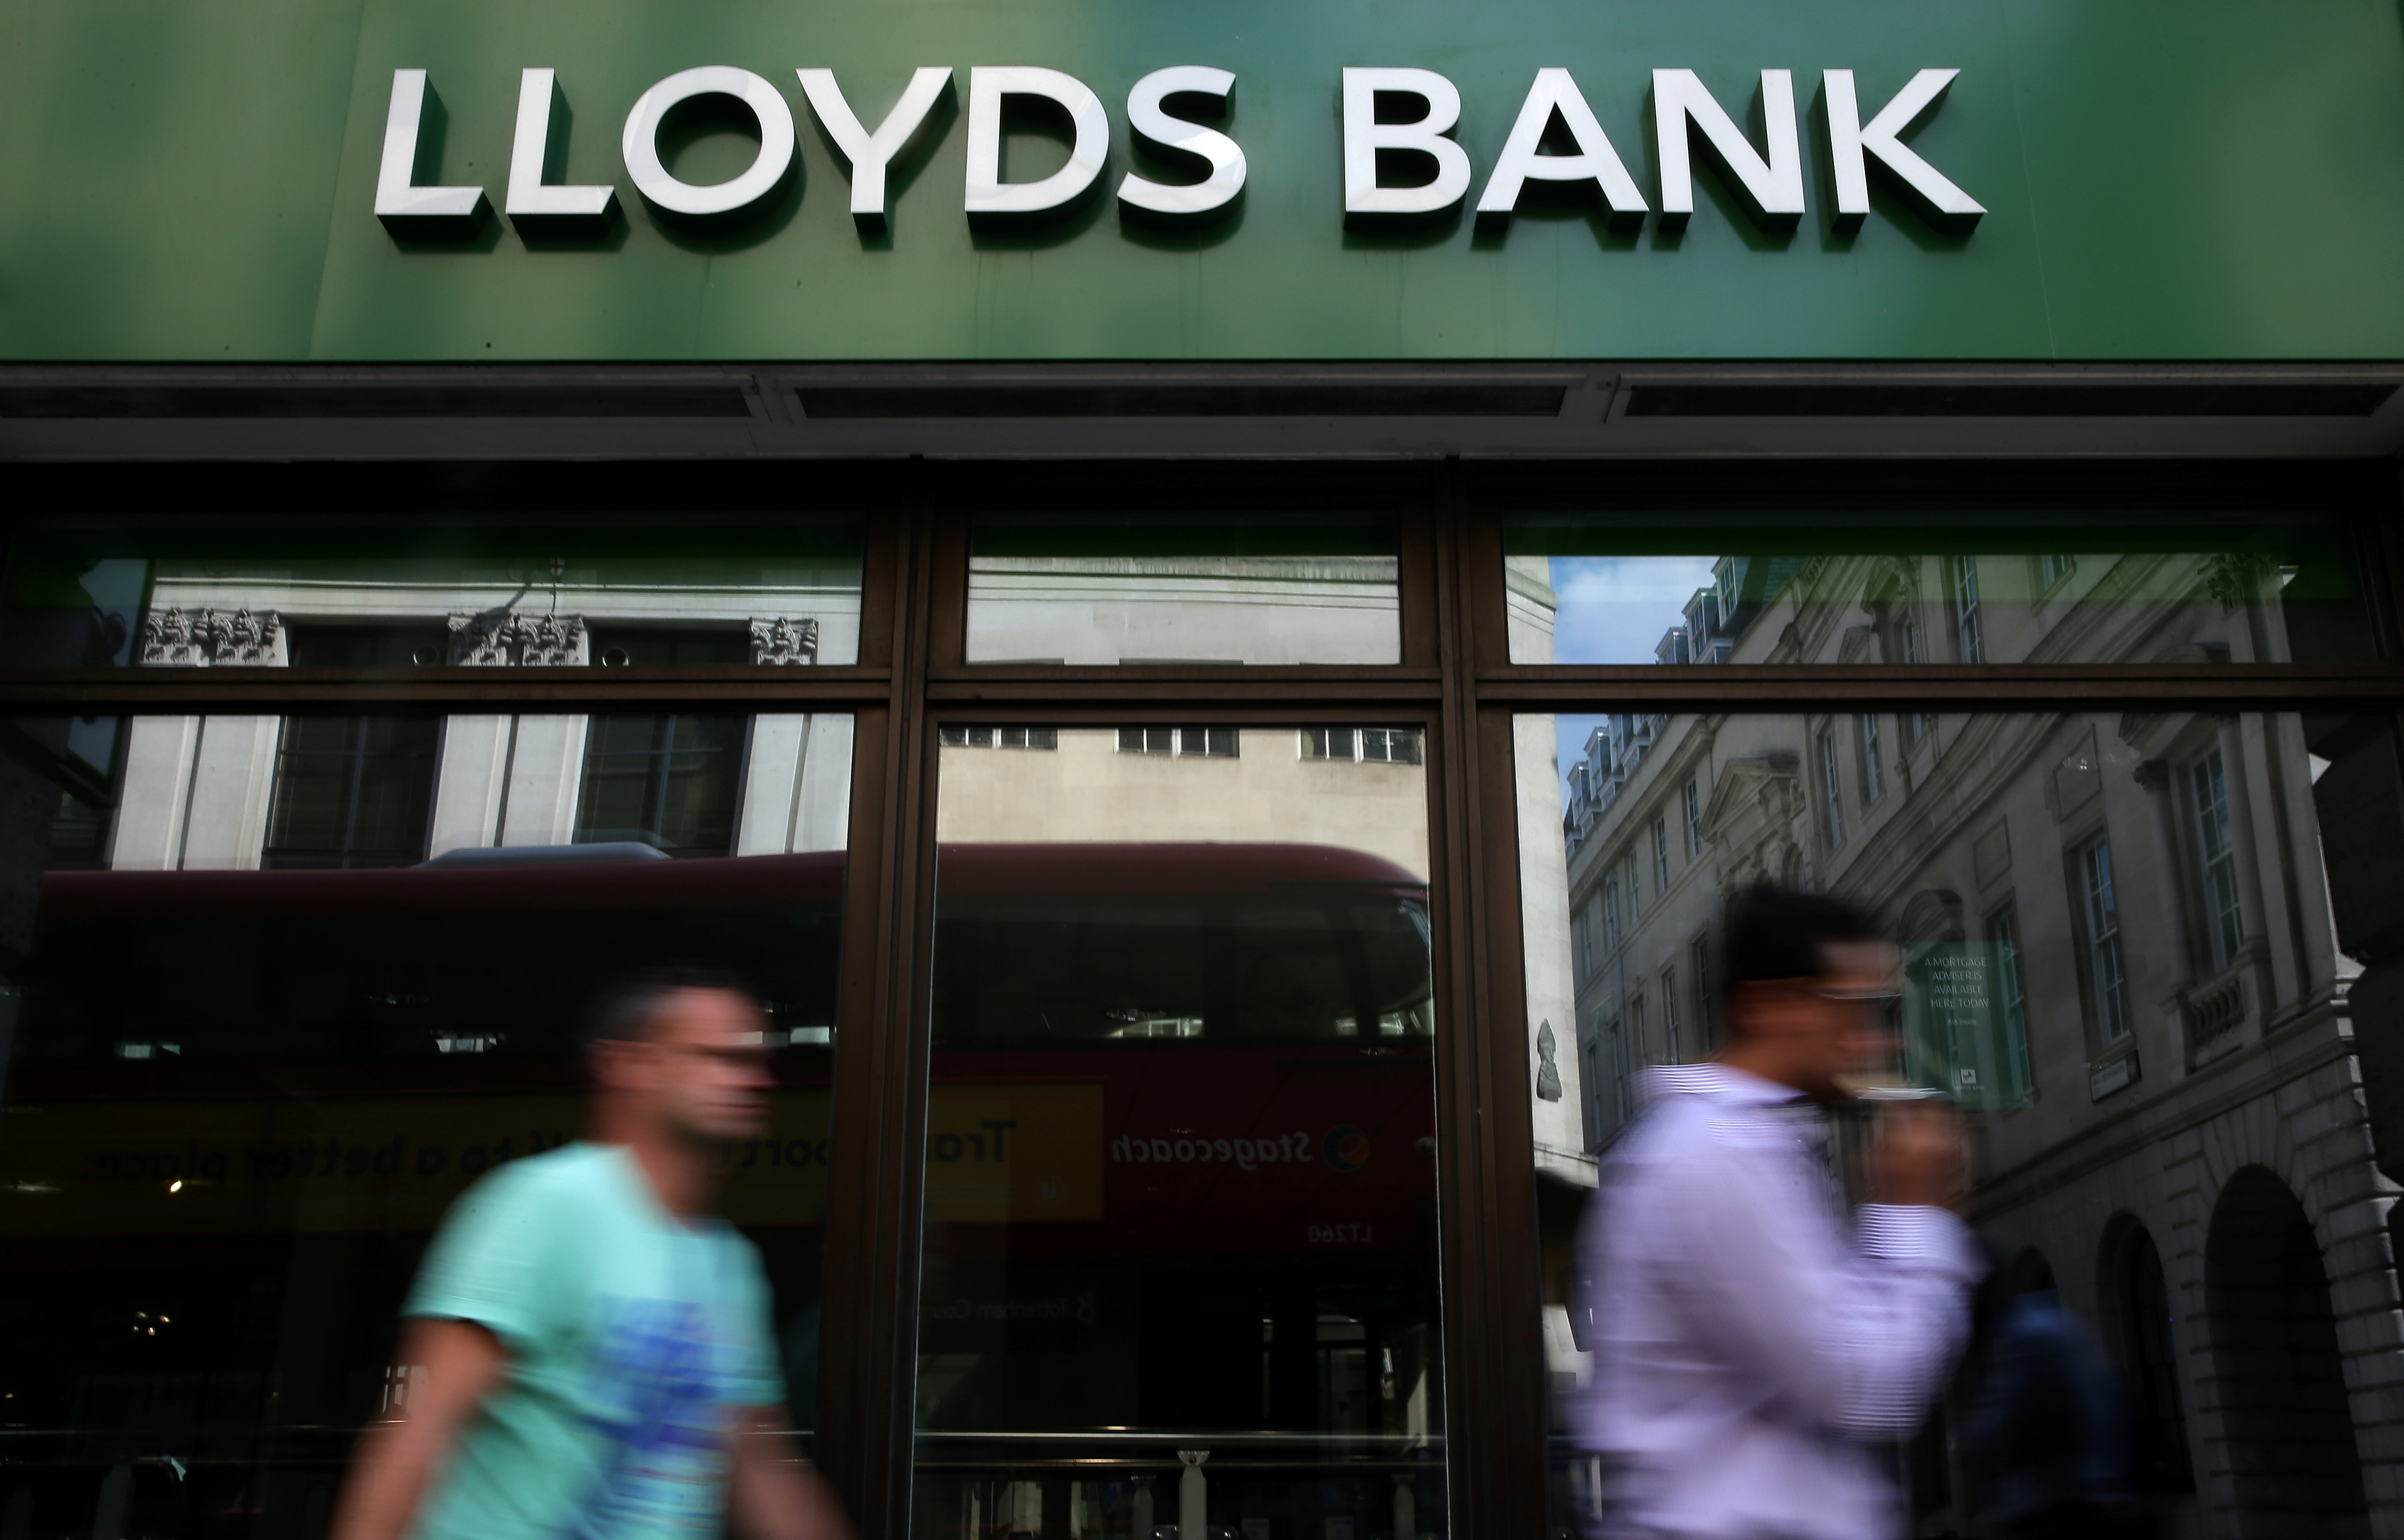 Mitie to continue managing Lloyds Bank facilities until 2024